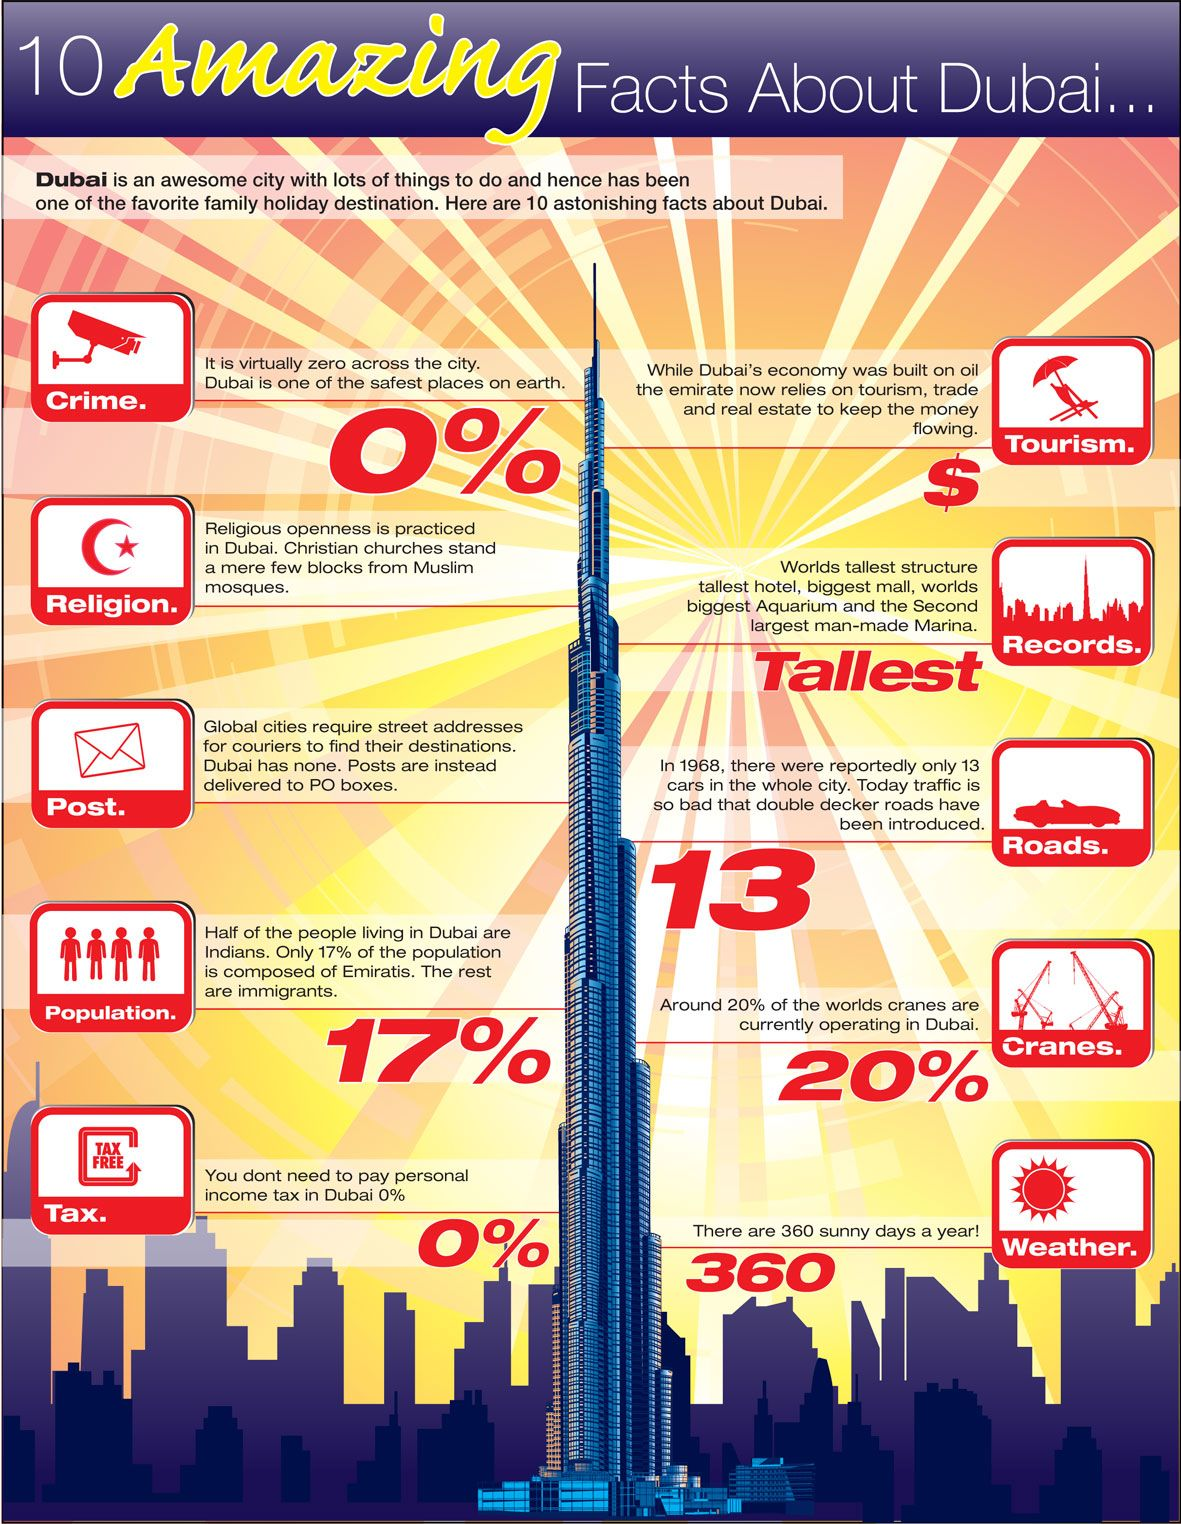 Dubai has smashed lots of records in the past 10 years a